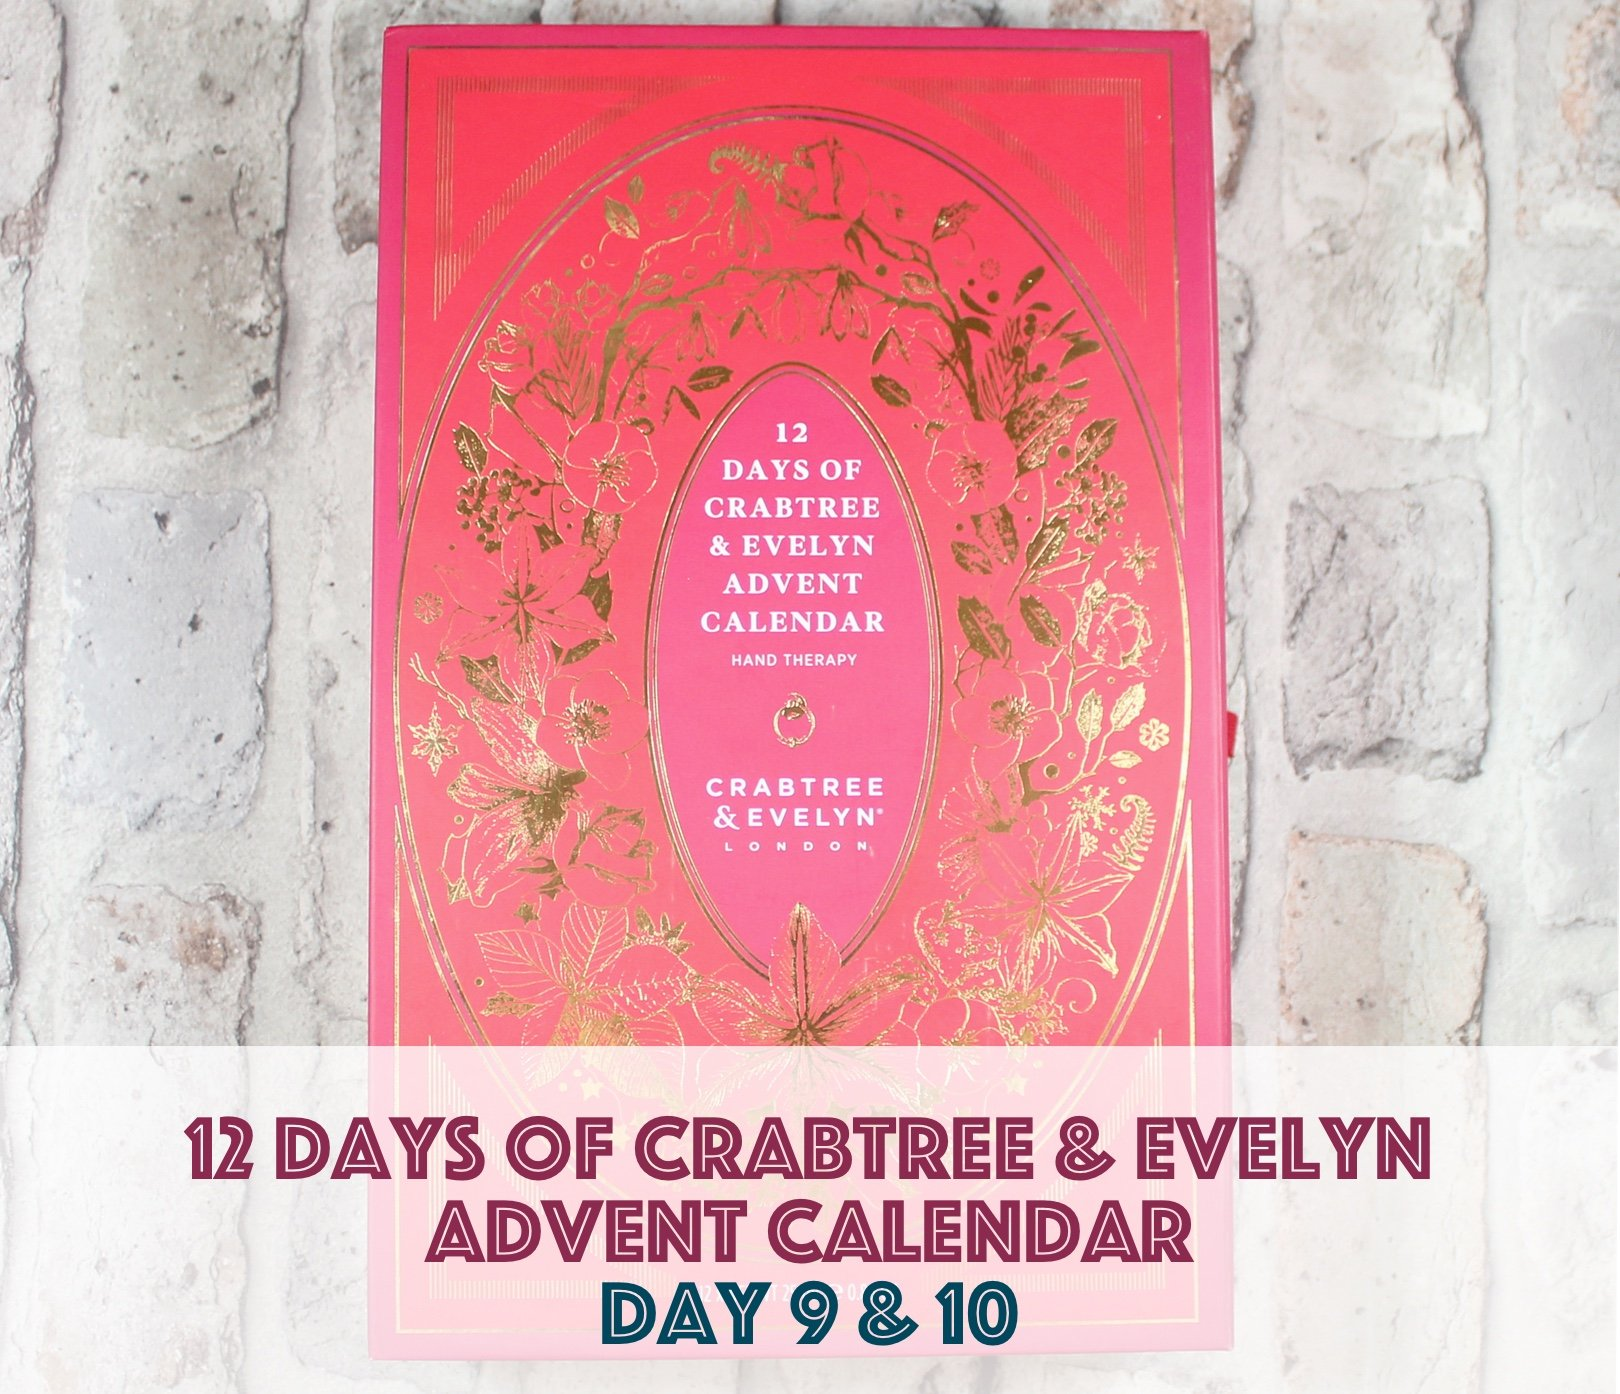 12 days of crabtree & evelyn advent calendar – day 9 & 10